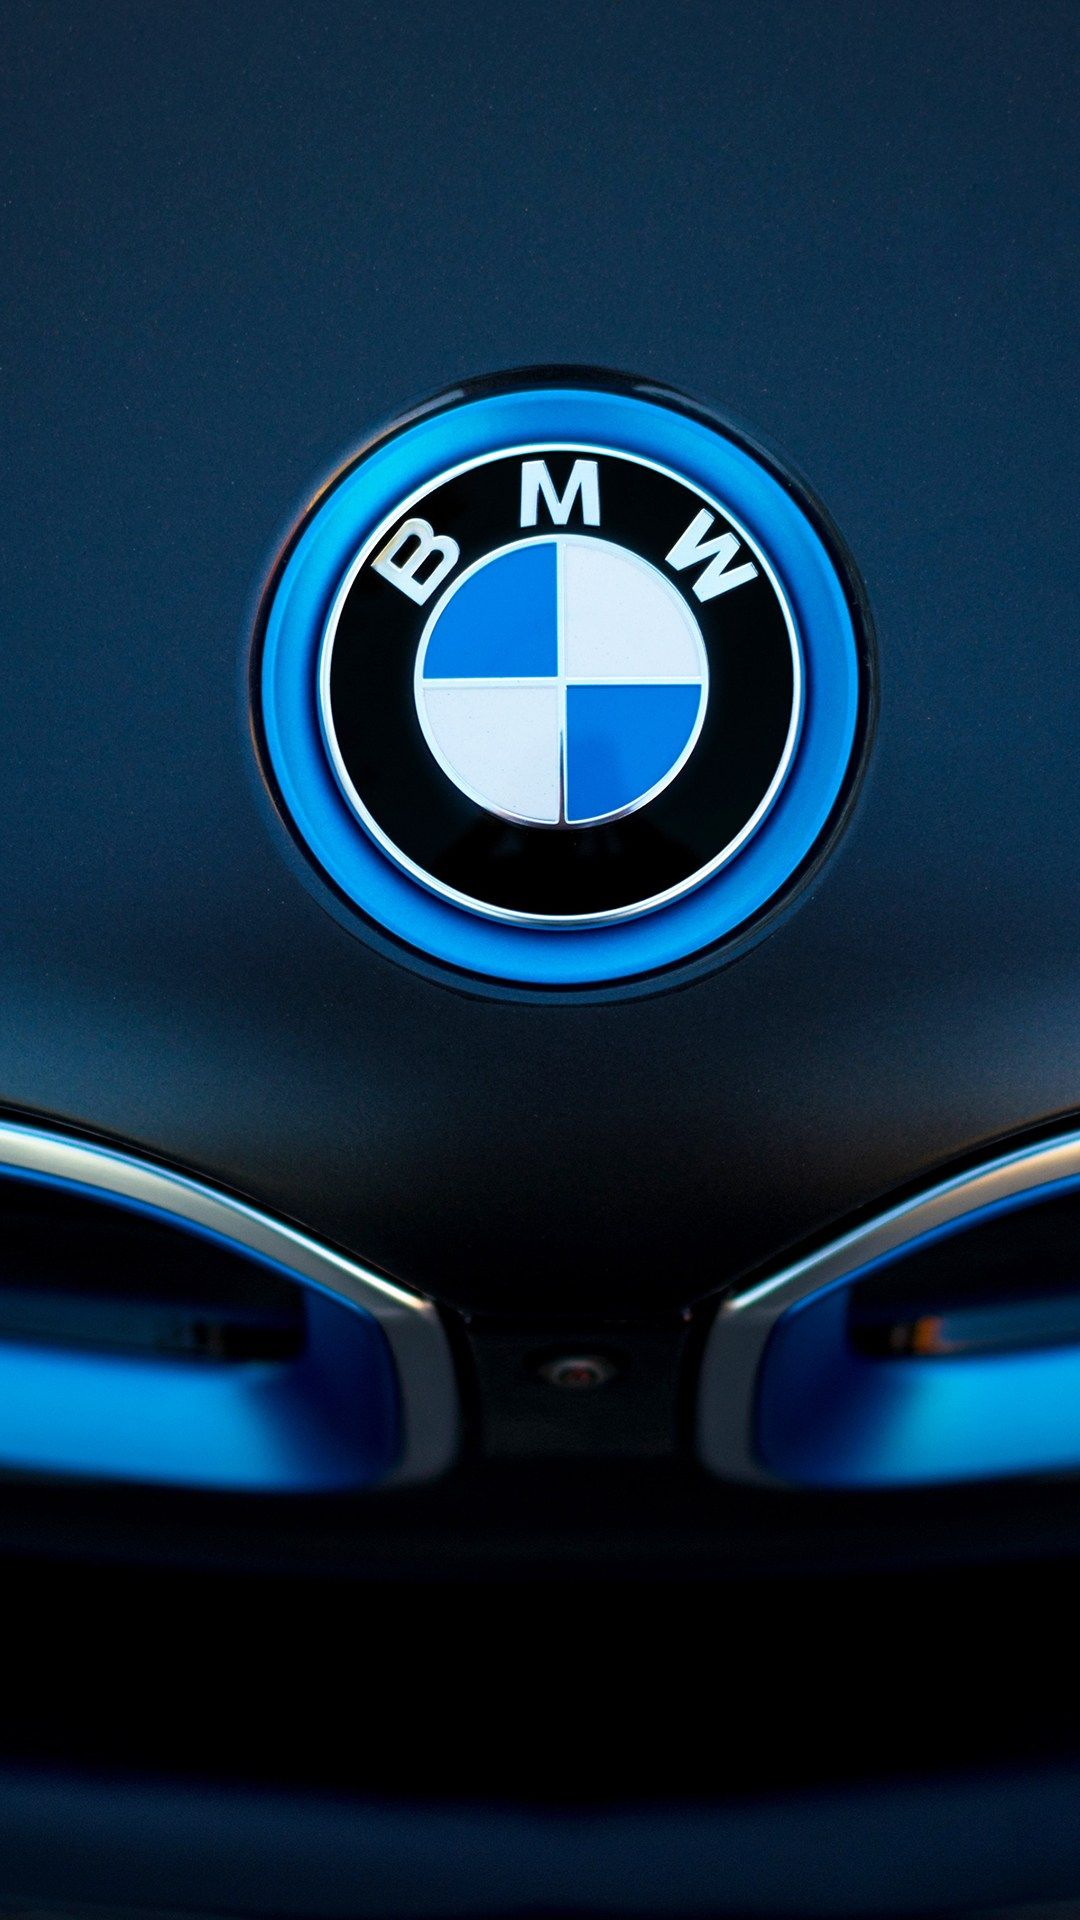 Bmw I8 Hd Wallpaper For Your Mobile Bmw I8 Wallpaper For Mobile